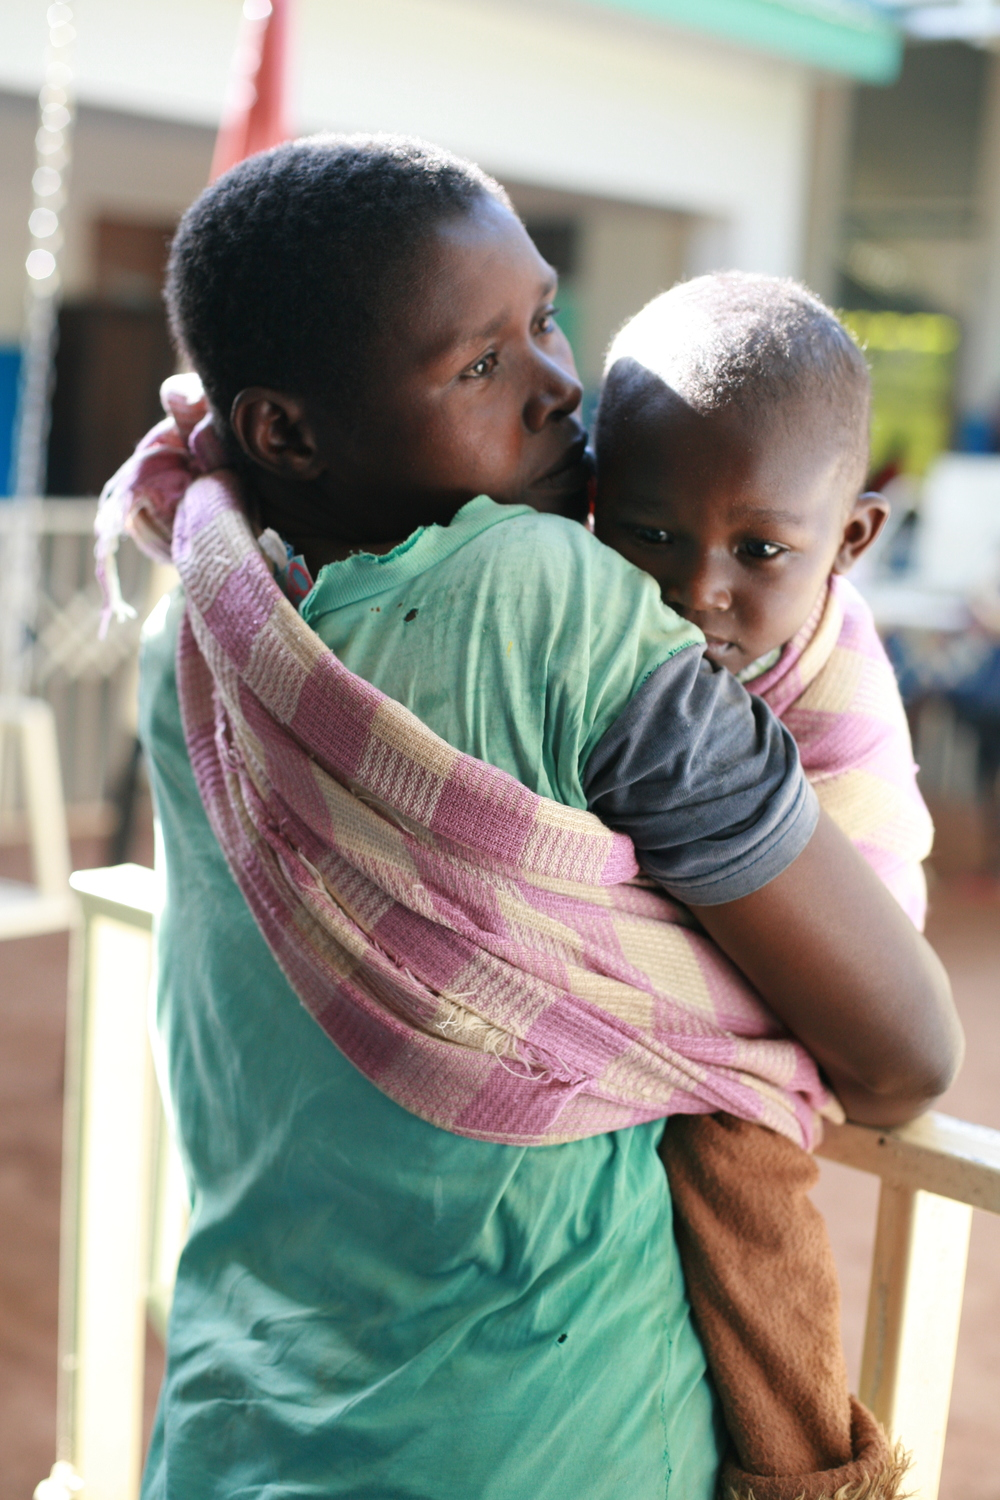 A mother comforts her son as they wait for the doctors to set up for his treatment.JPG